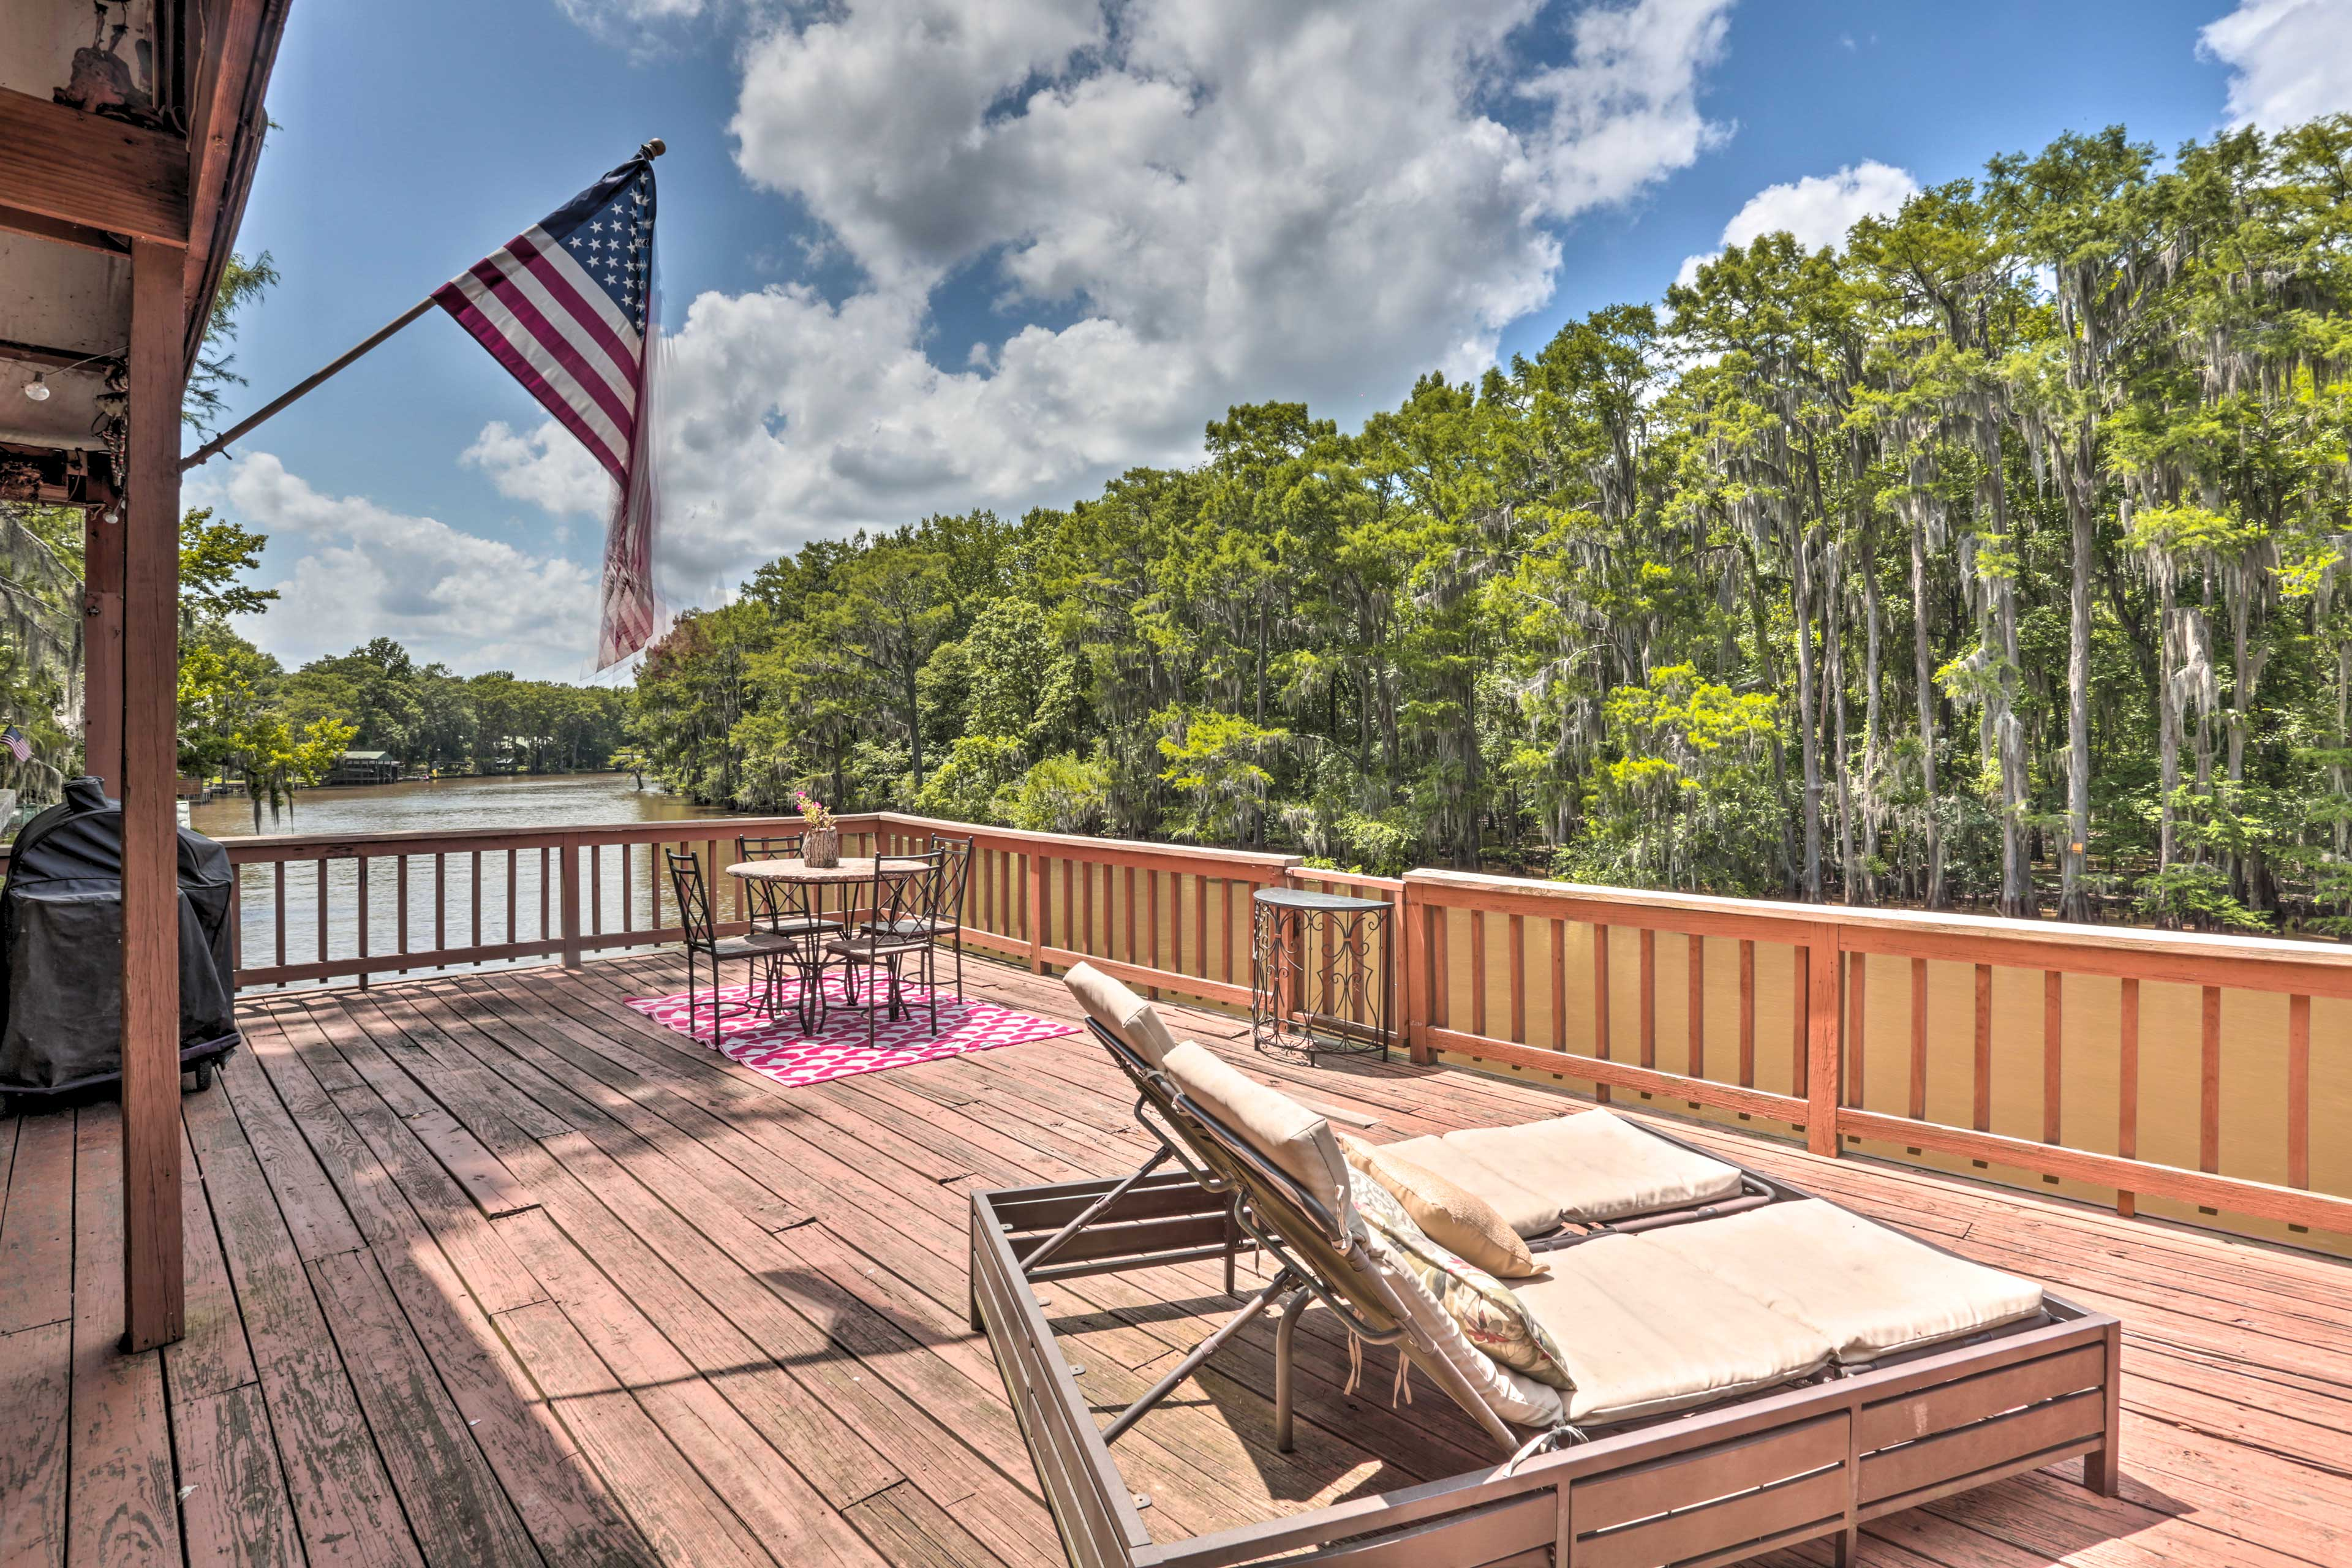 Karnack Vacation Rental   4BR   2BA   1,800 Sq Ft   Steps Required For Access